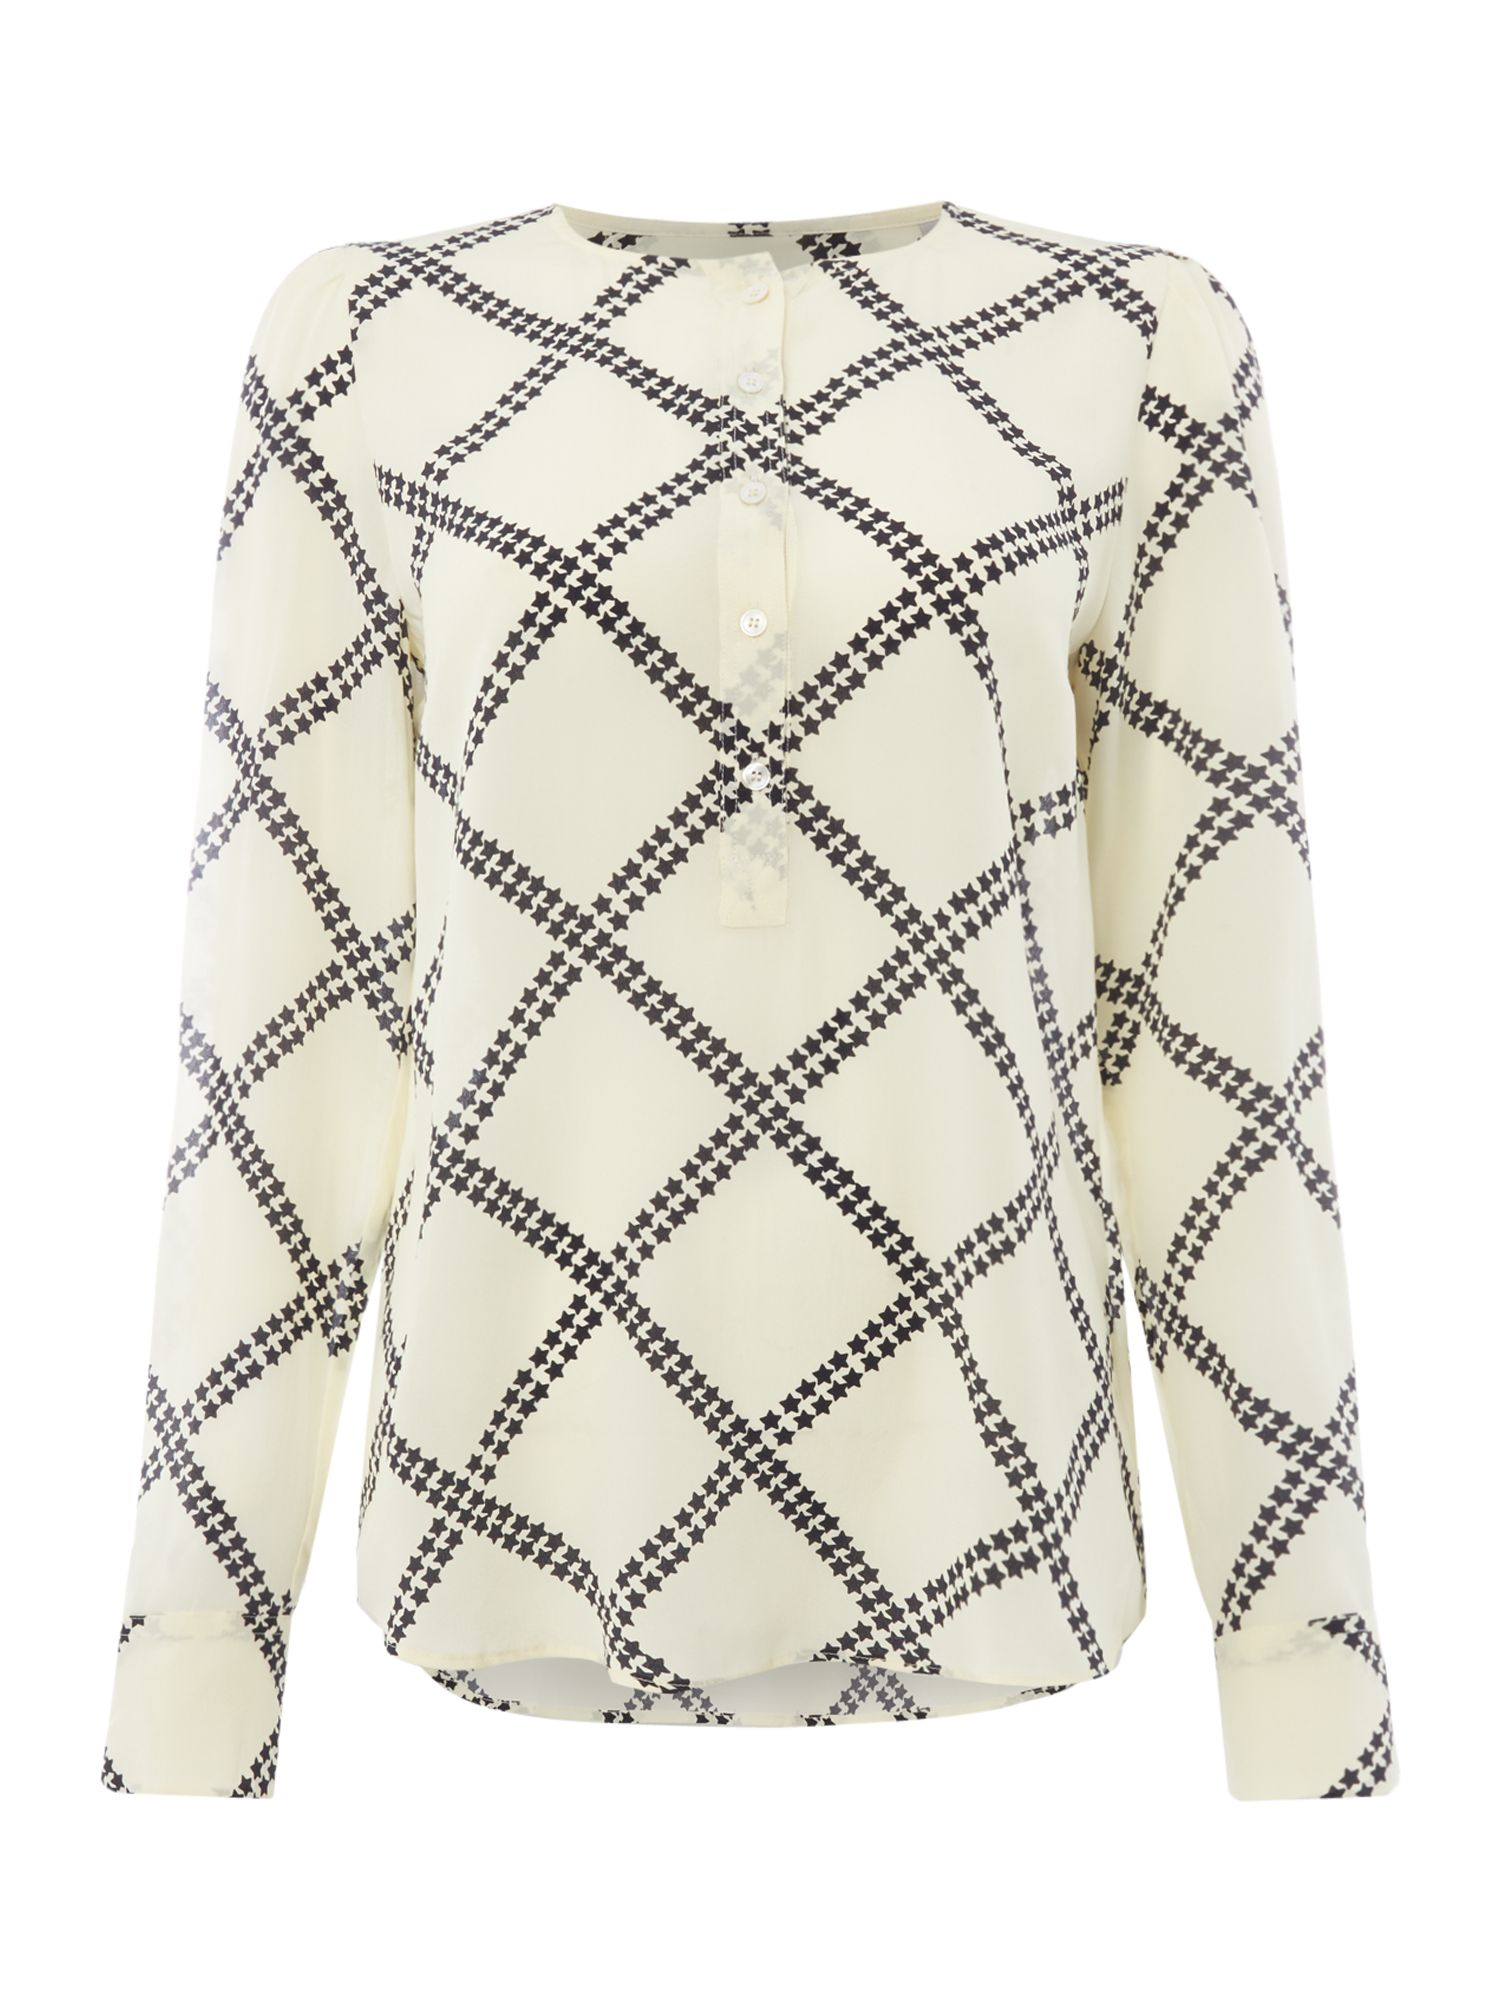 Marella Salato star check blouse, White